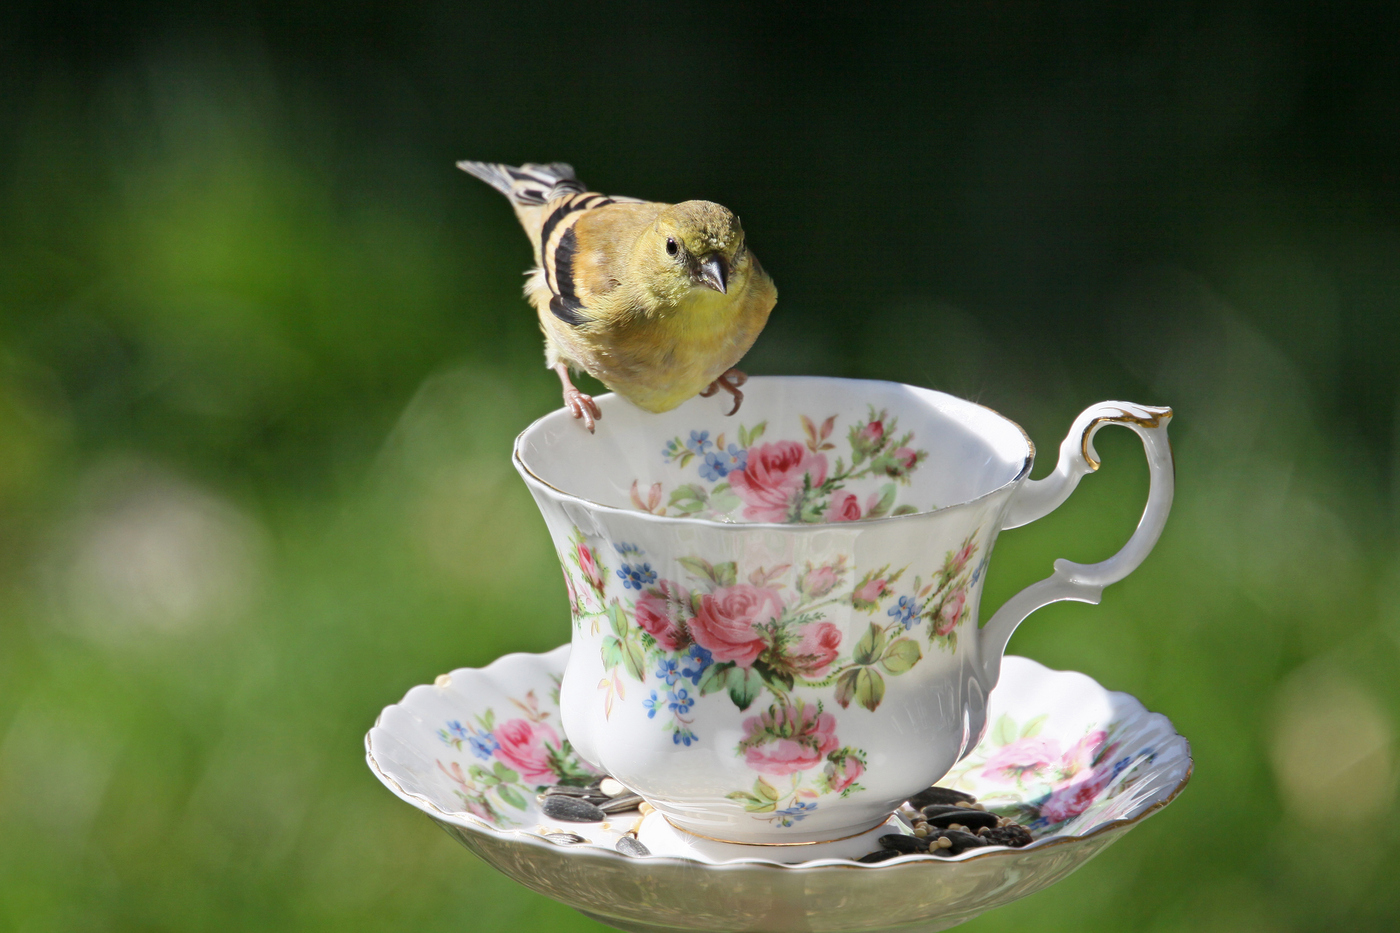 Goldfinch at Teacup